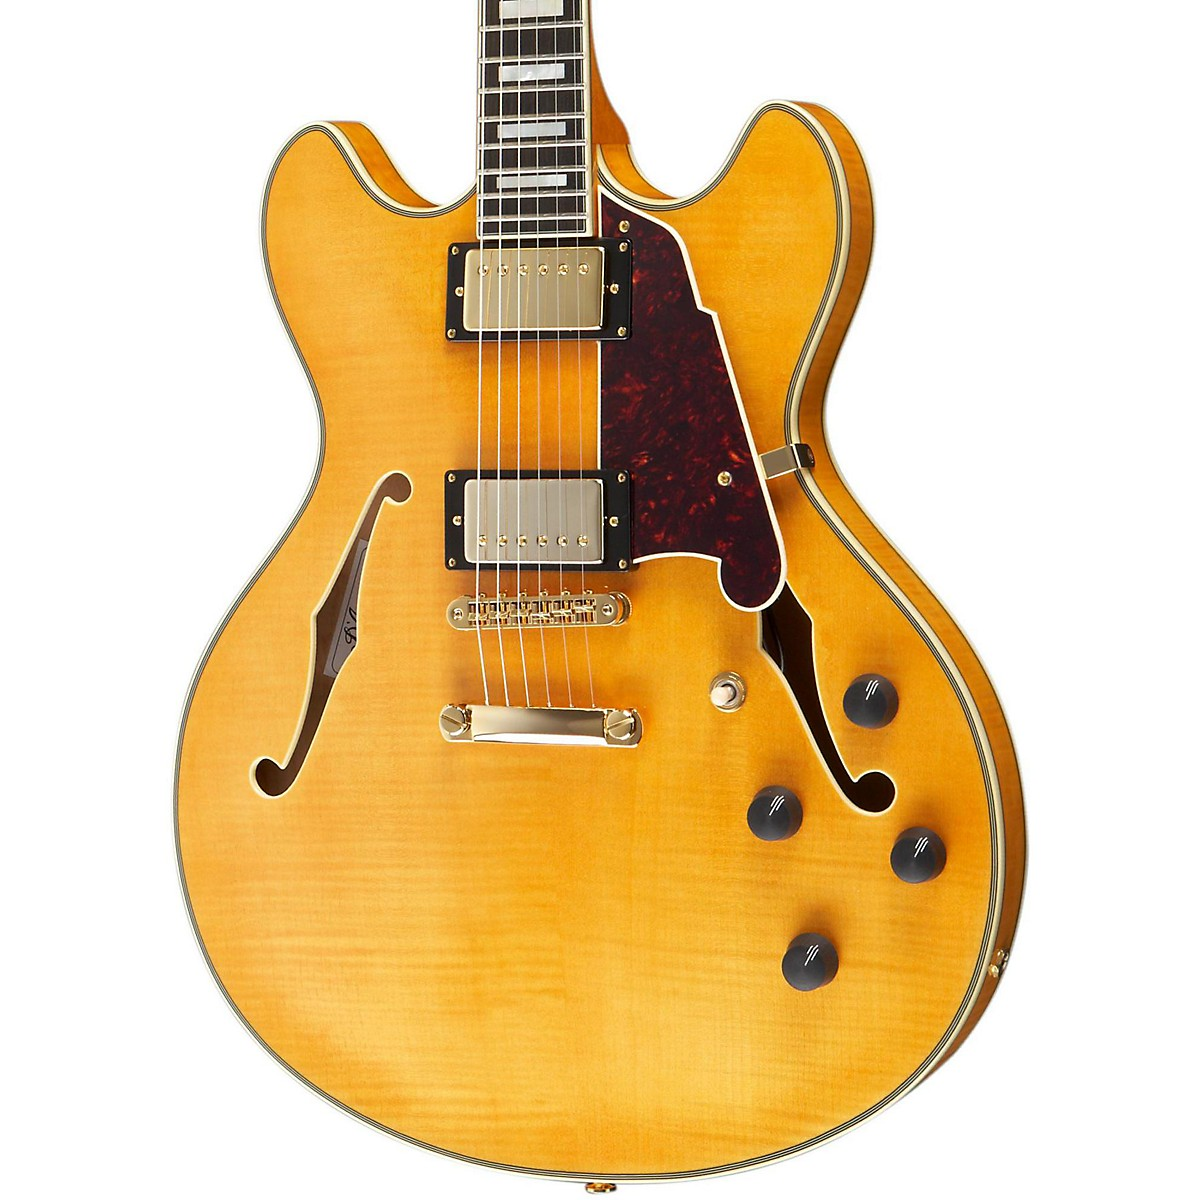 D'Angelico Excel Series DC Semi-Hollow Electric Guitar with Stopbar Tailpiece